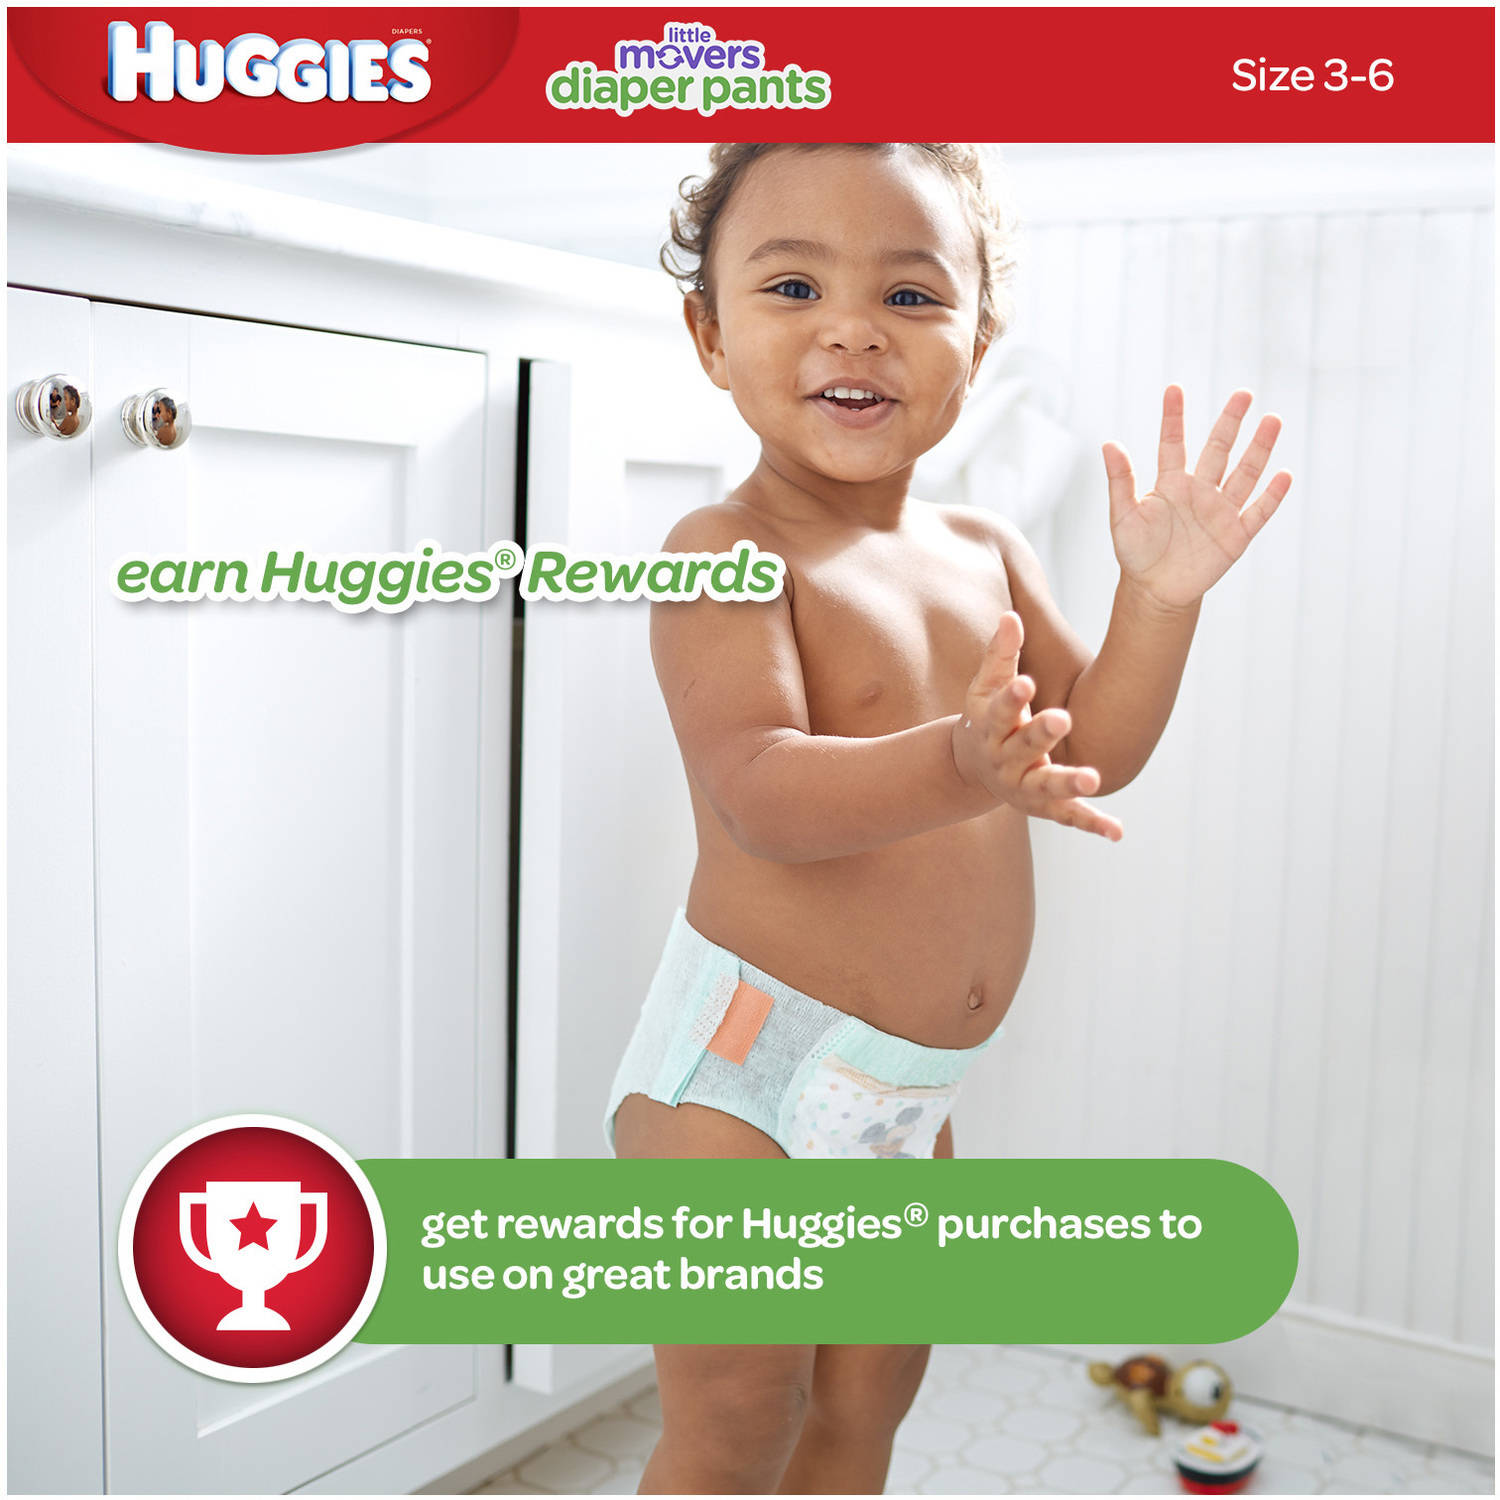 HUGGIES Little Movers Slip-On Diaper Pants, Size 6, 74 Diapers ...